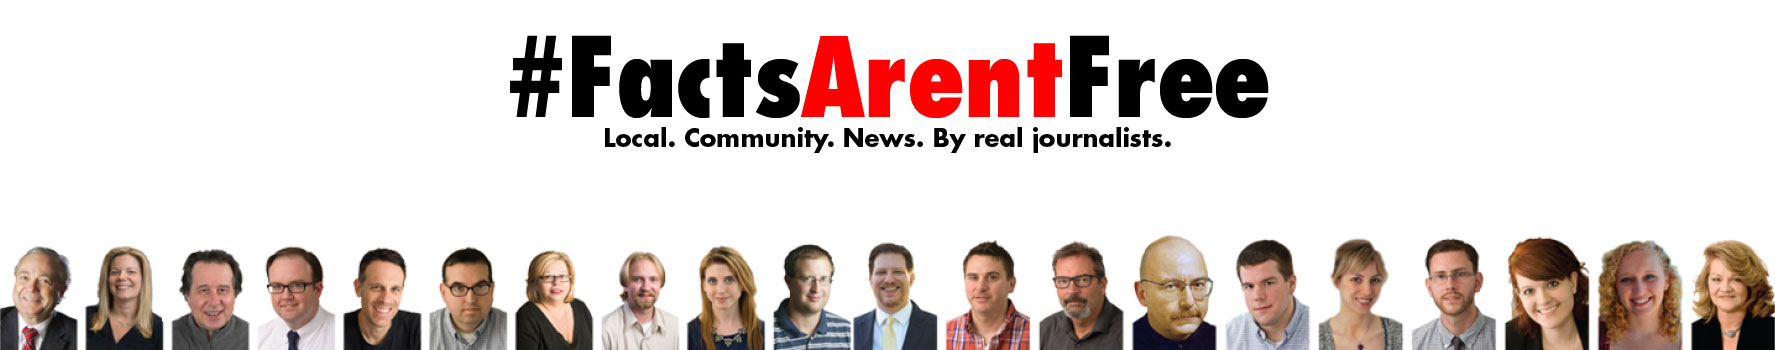 #facts aren't free slogan. Local community news by real reporters image with reporters